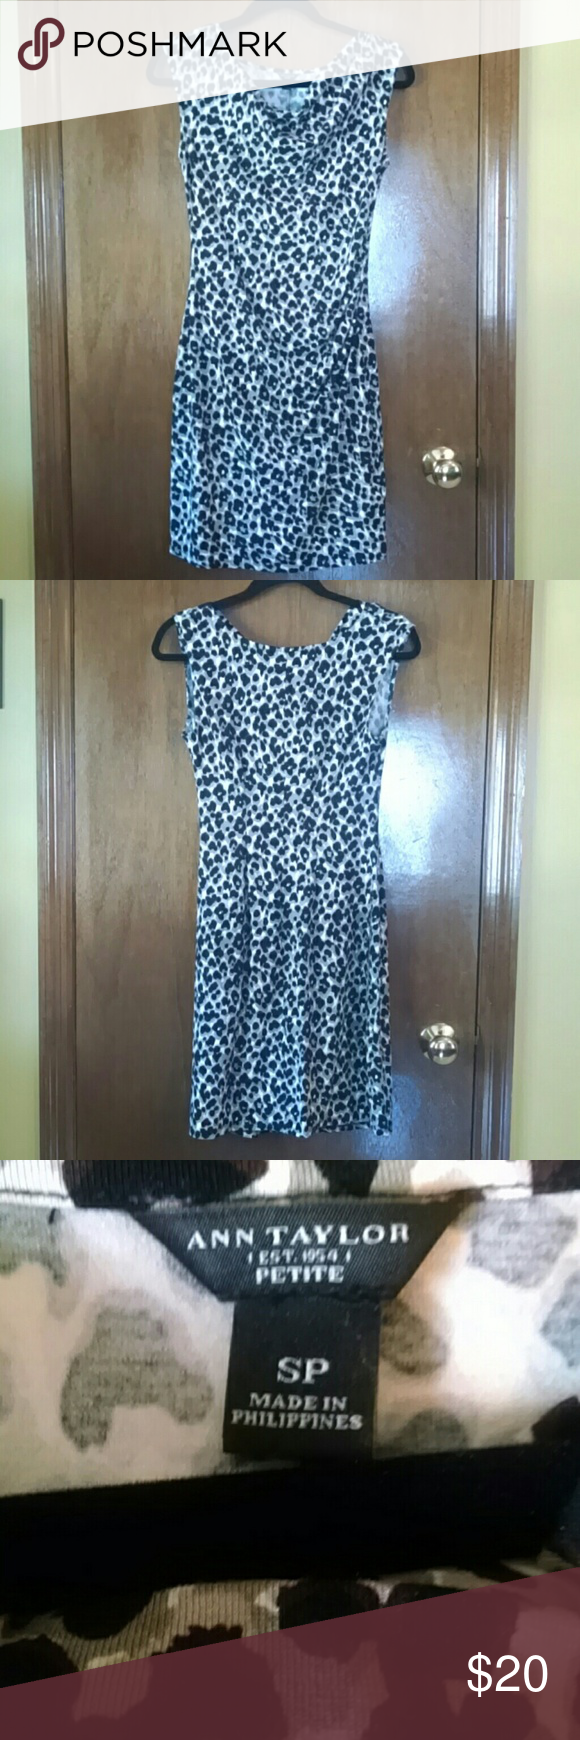 Ann Taylor Animal Print Sheath Dress This is an animal print sheath dress by Ann Taylor.  Size is Small Petite. The neckline is weighted to keep the fabric in place. Ruched side. The fabric stretches nicely to fit your form. Excellent condition.  93% Rayon, 7% Spandex. Ann Taylor Dresses